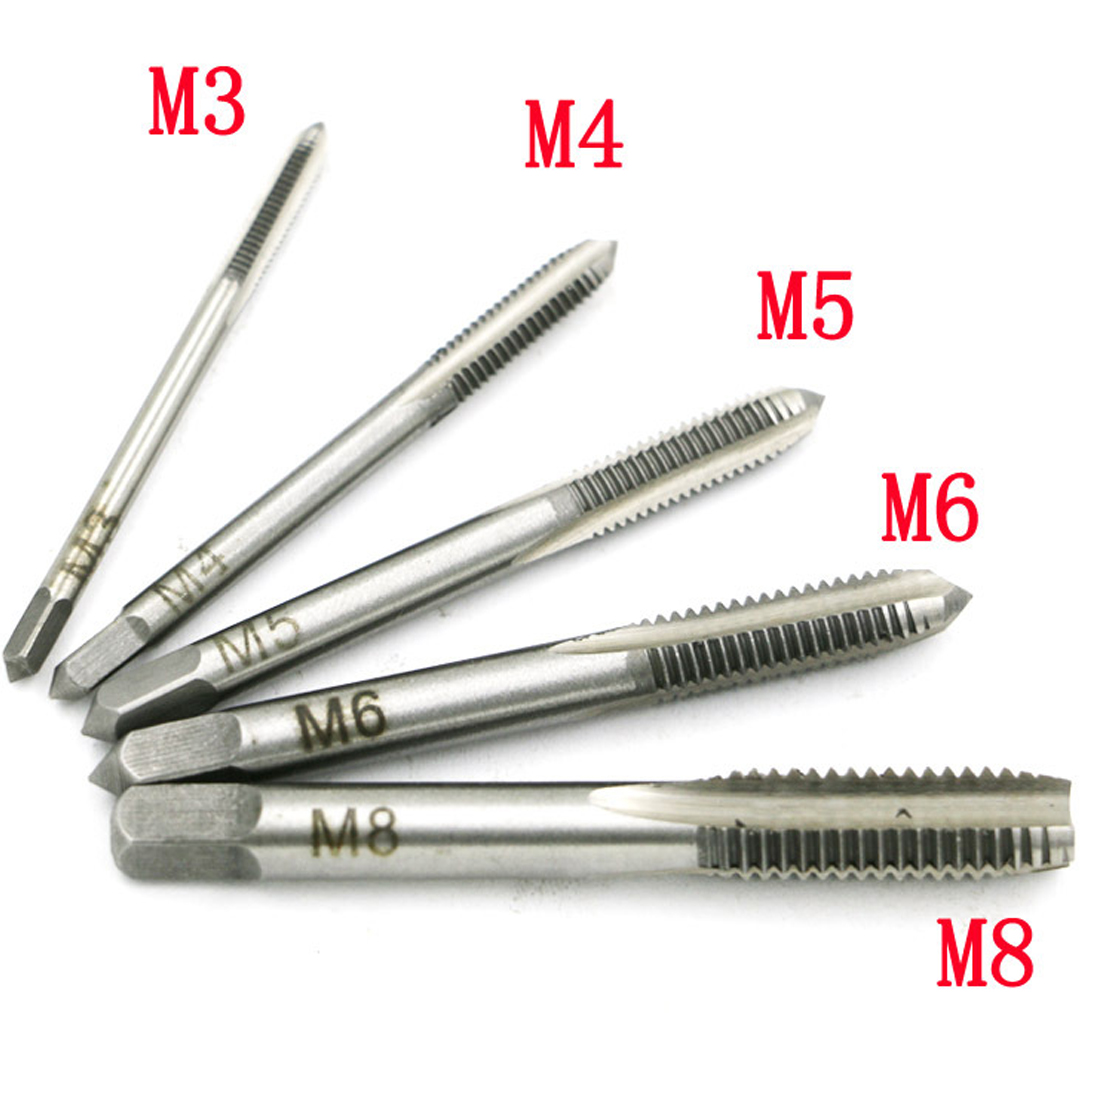 5PCS Screw Thread Tap Drill Bit HSS Metric Plug Hand Tapper Set M3/M4/M5/M6/M8 For Machine Tools